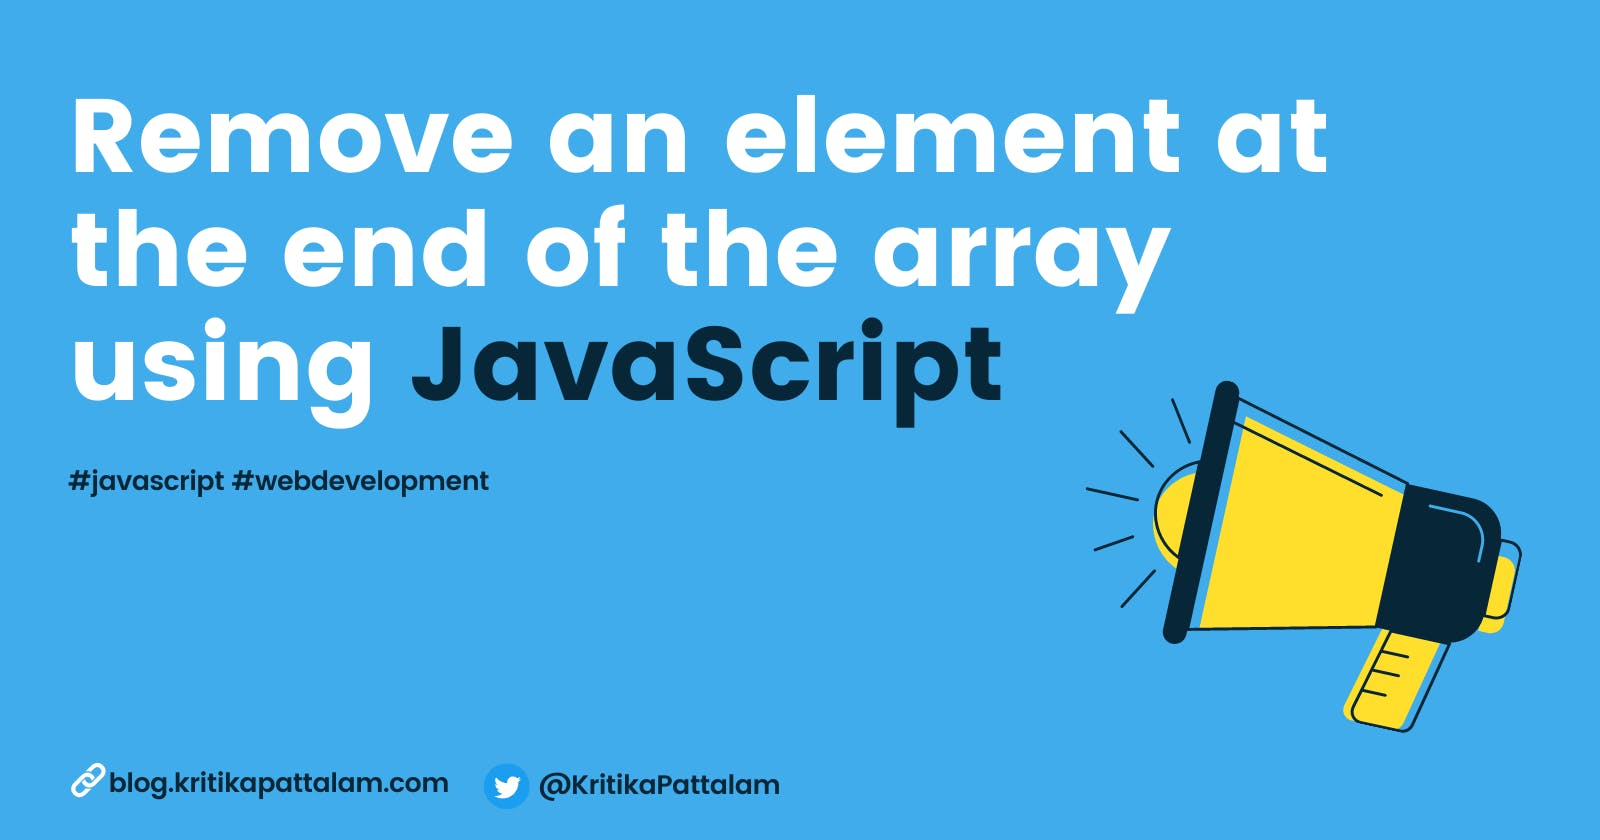 Different ways to remove an element at the end of the array using JavaScript